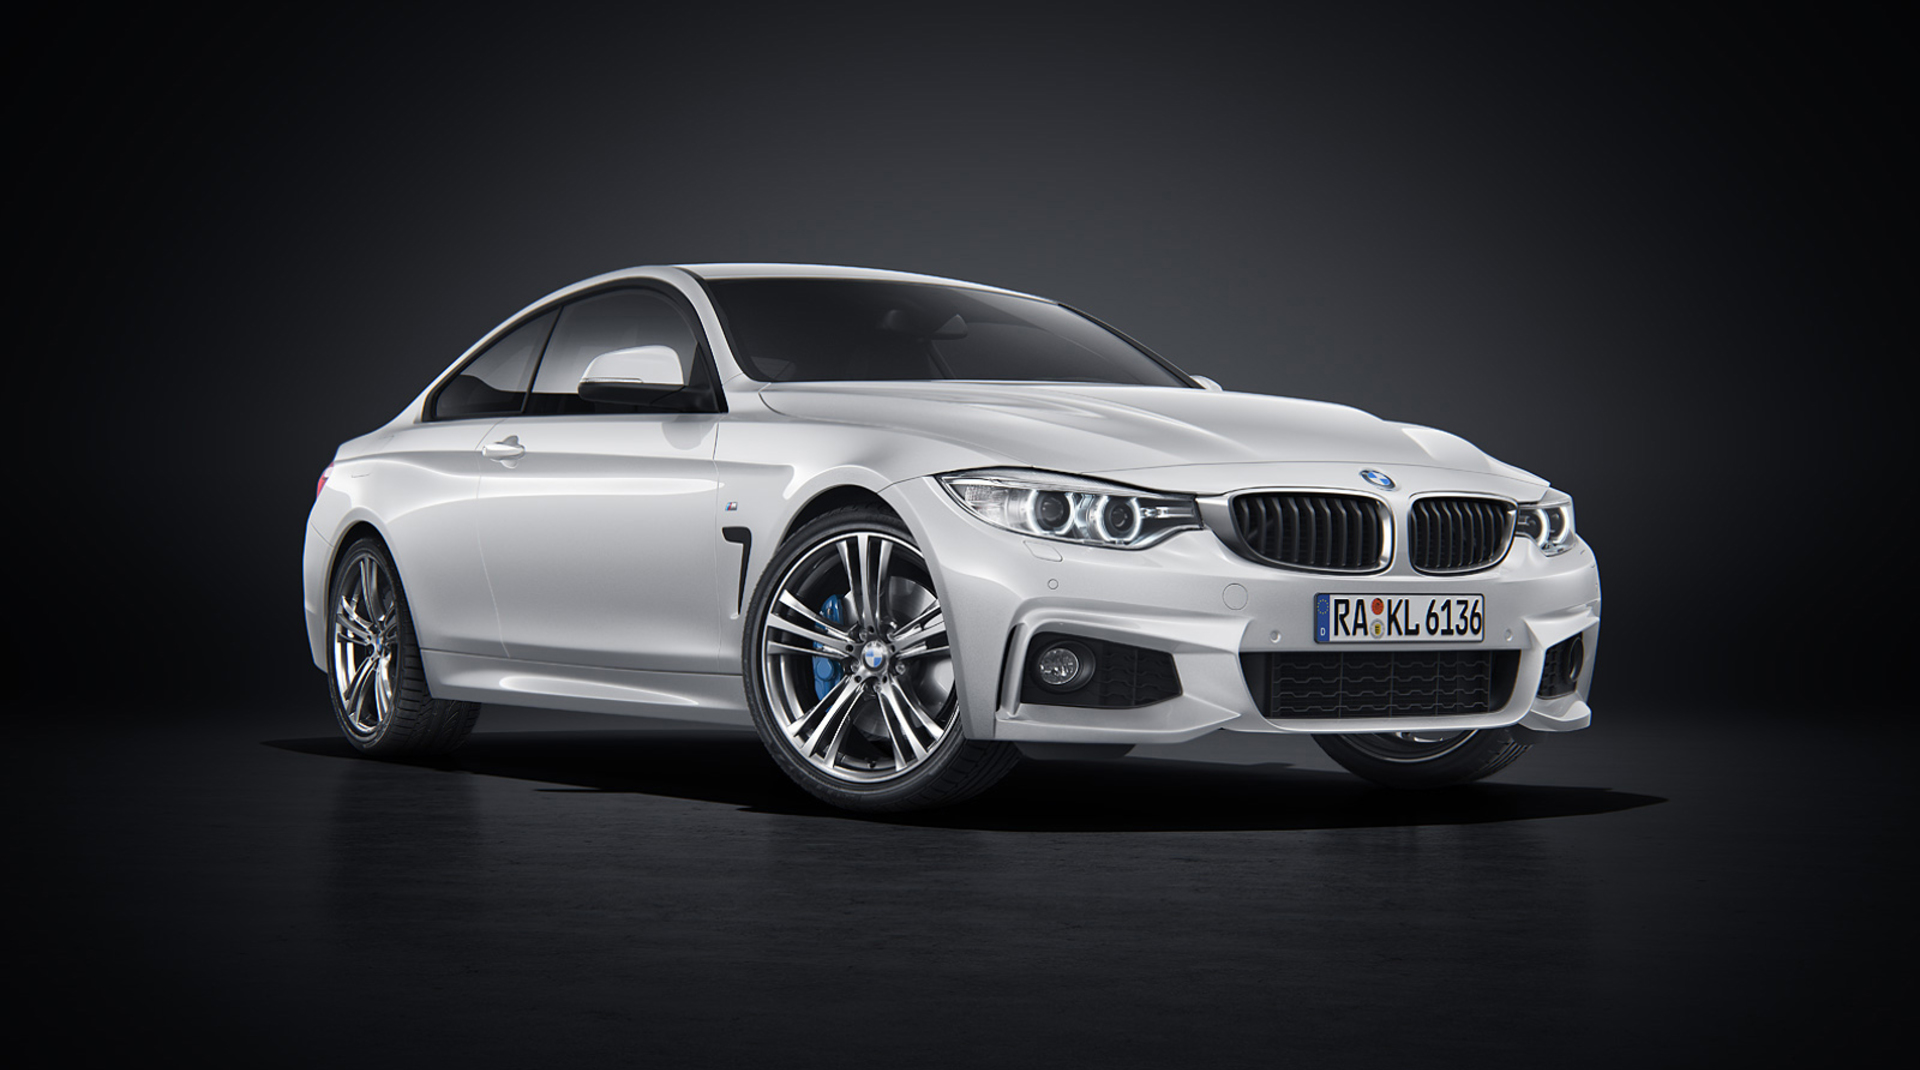 Piotr kosinski bmw 435i automotive vray 3ds max 01 spotlight